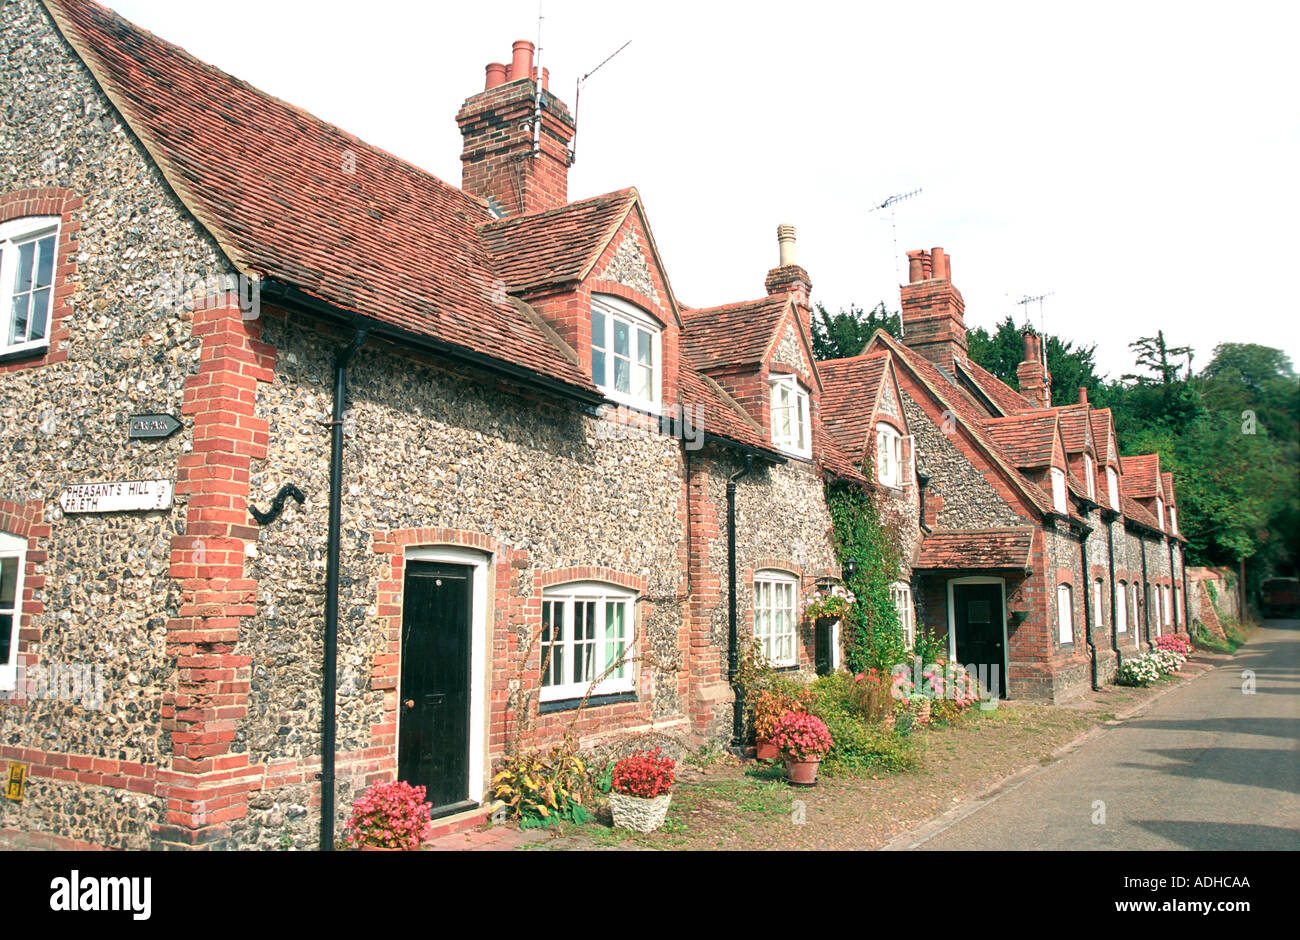 Classic English cottage scene of many films and TV shows - Stock Image